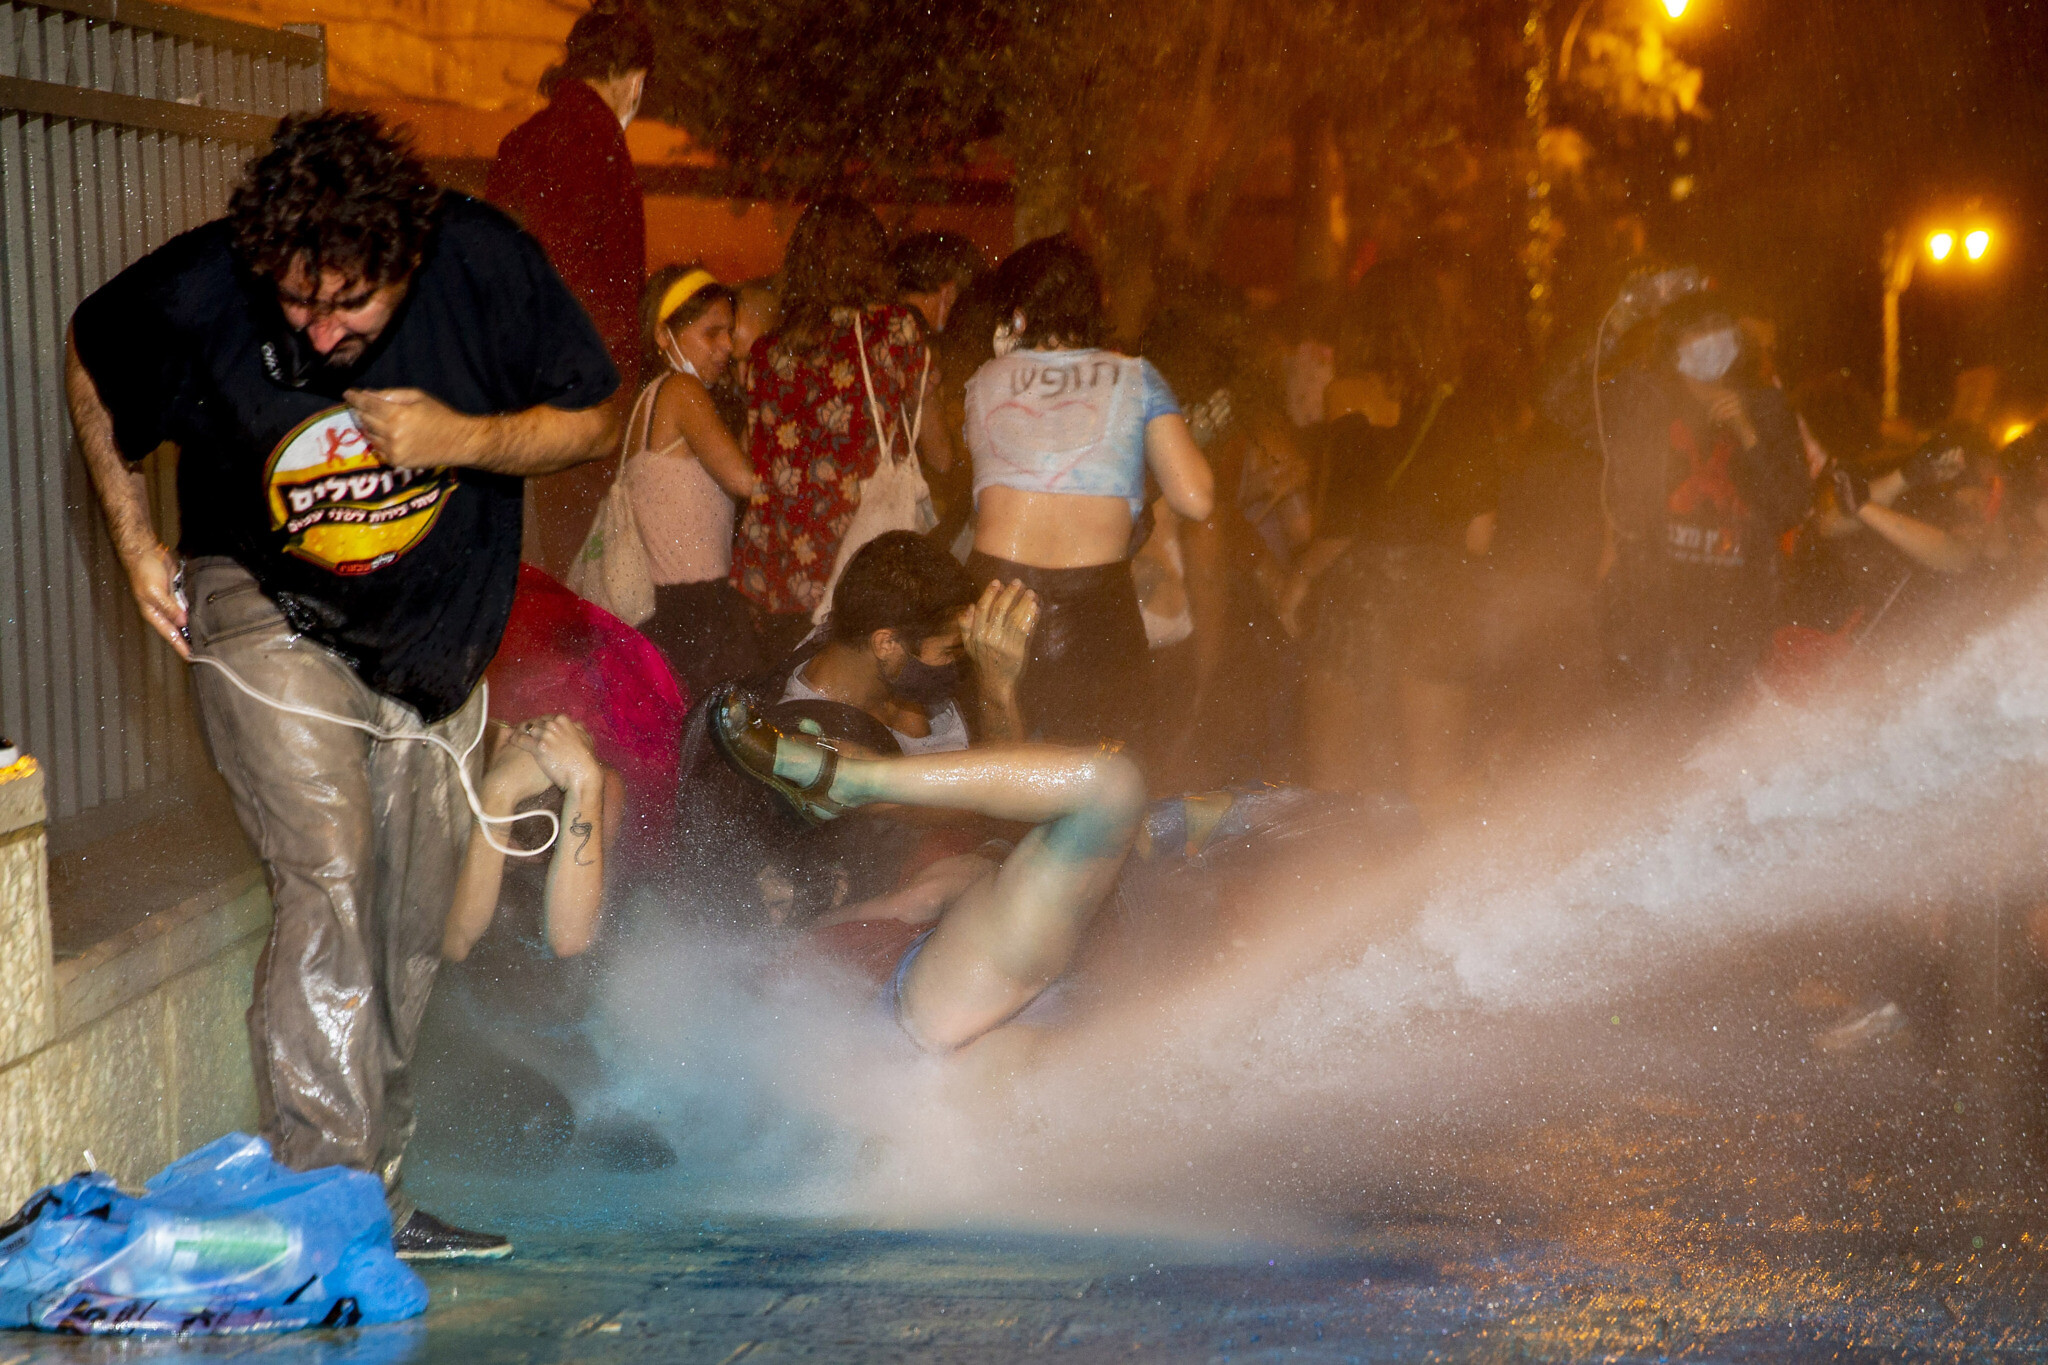 Police use a water cannon to disperse demonstrators during a protest against Prime Minister Benjamin Netanyahu outside his residence in Jerusalem, July 22, 2020 (AP Photo/Ariel Schalit)